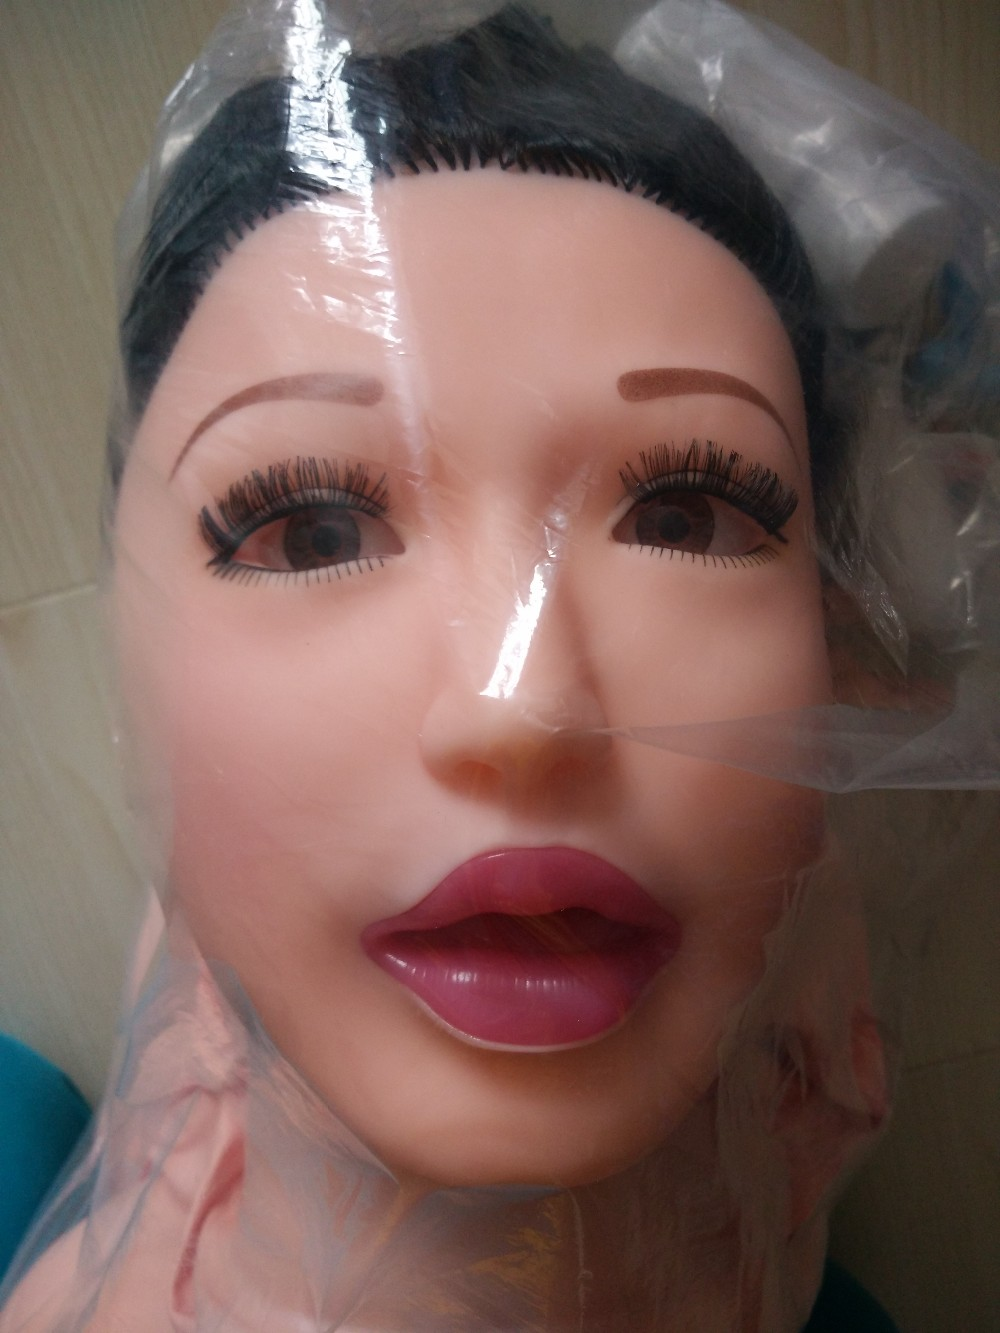 Oral/Vaginal/Anal Sex Dolls Thicker Factory Outlet Inflatable doll Chest can be filled with water Male masturbation Sex Products 4